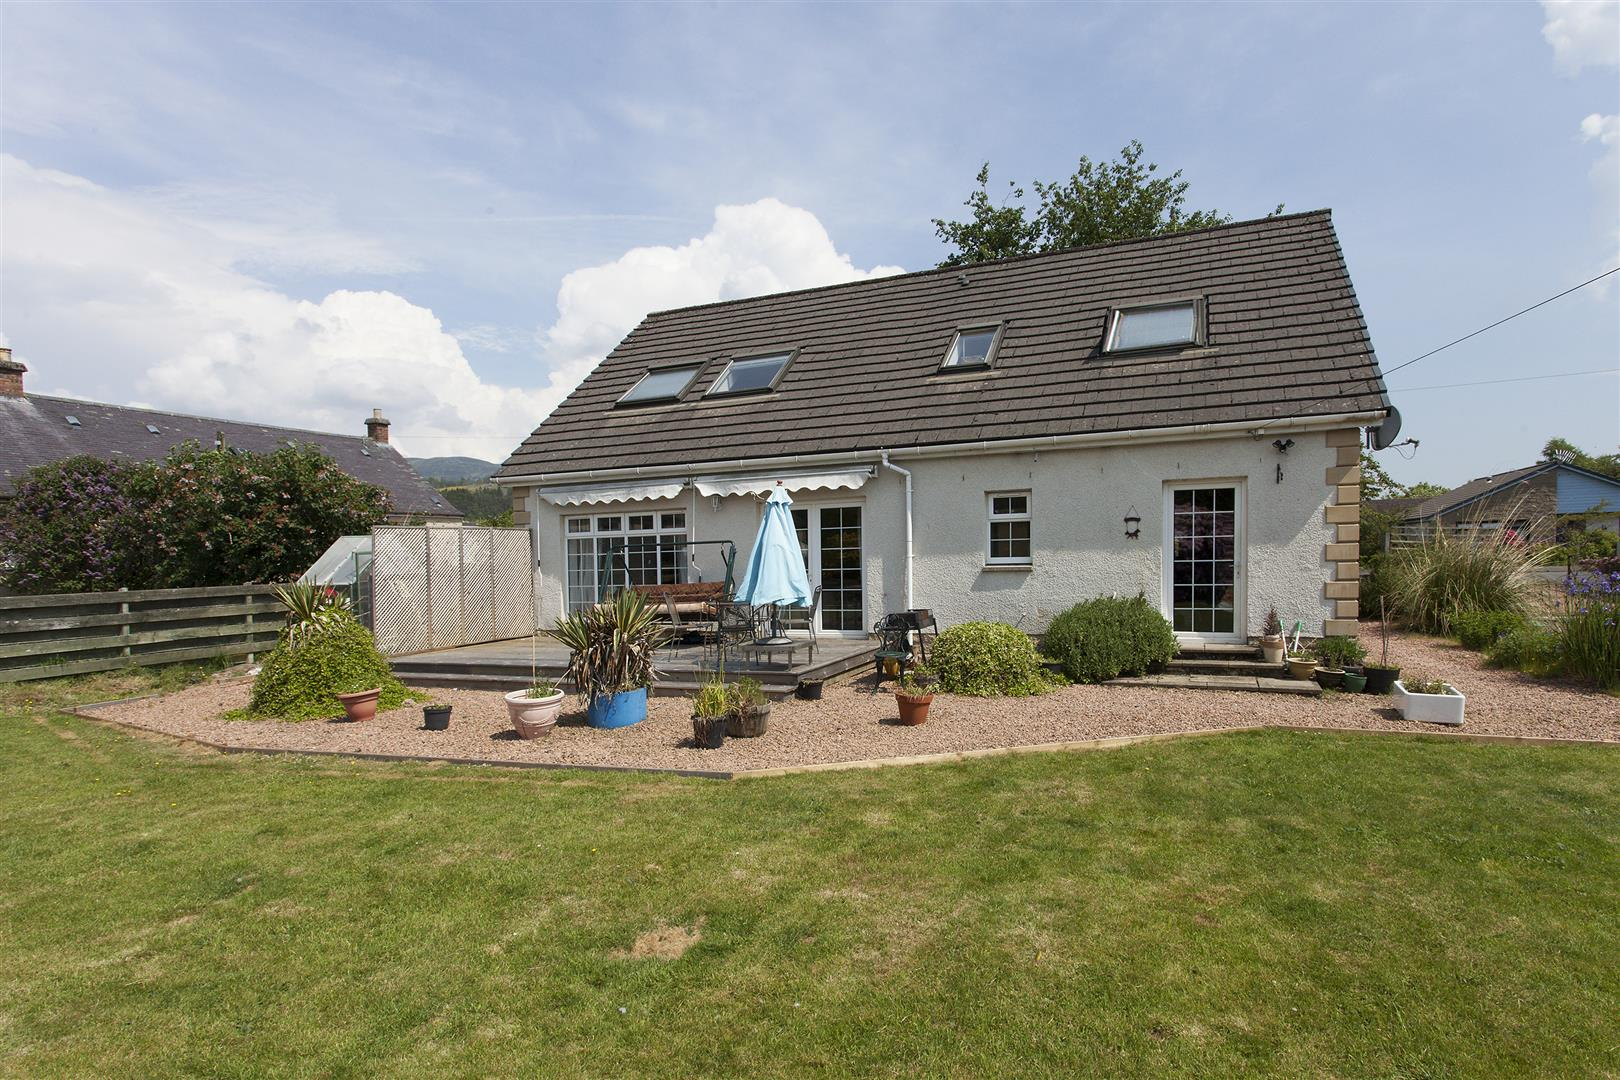 Appin Cottage, Strowan Road, Comrie, Comrie Crieff, Perthshire, PH6 2ES, UK